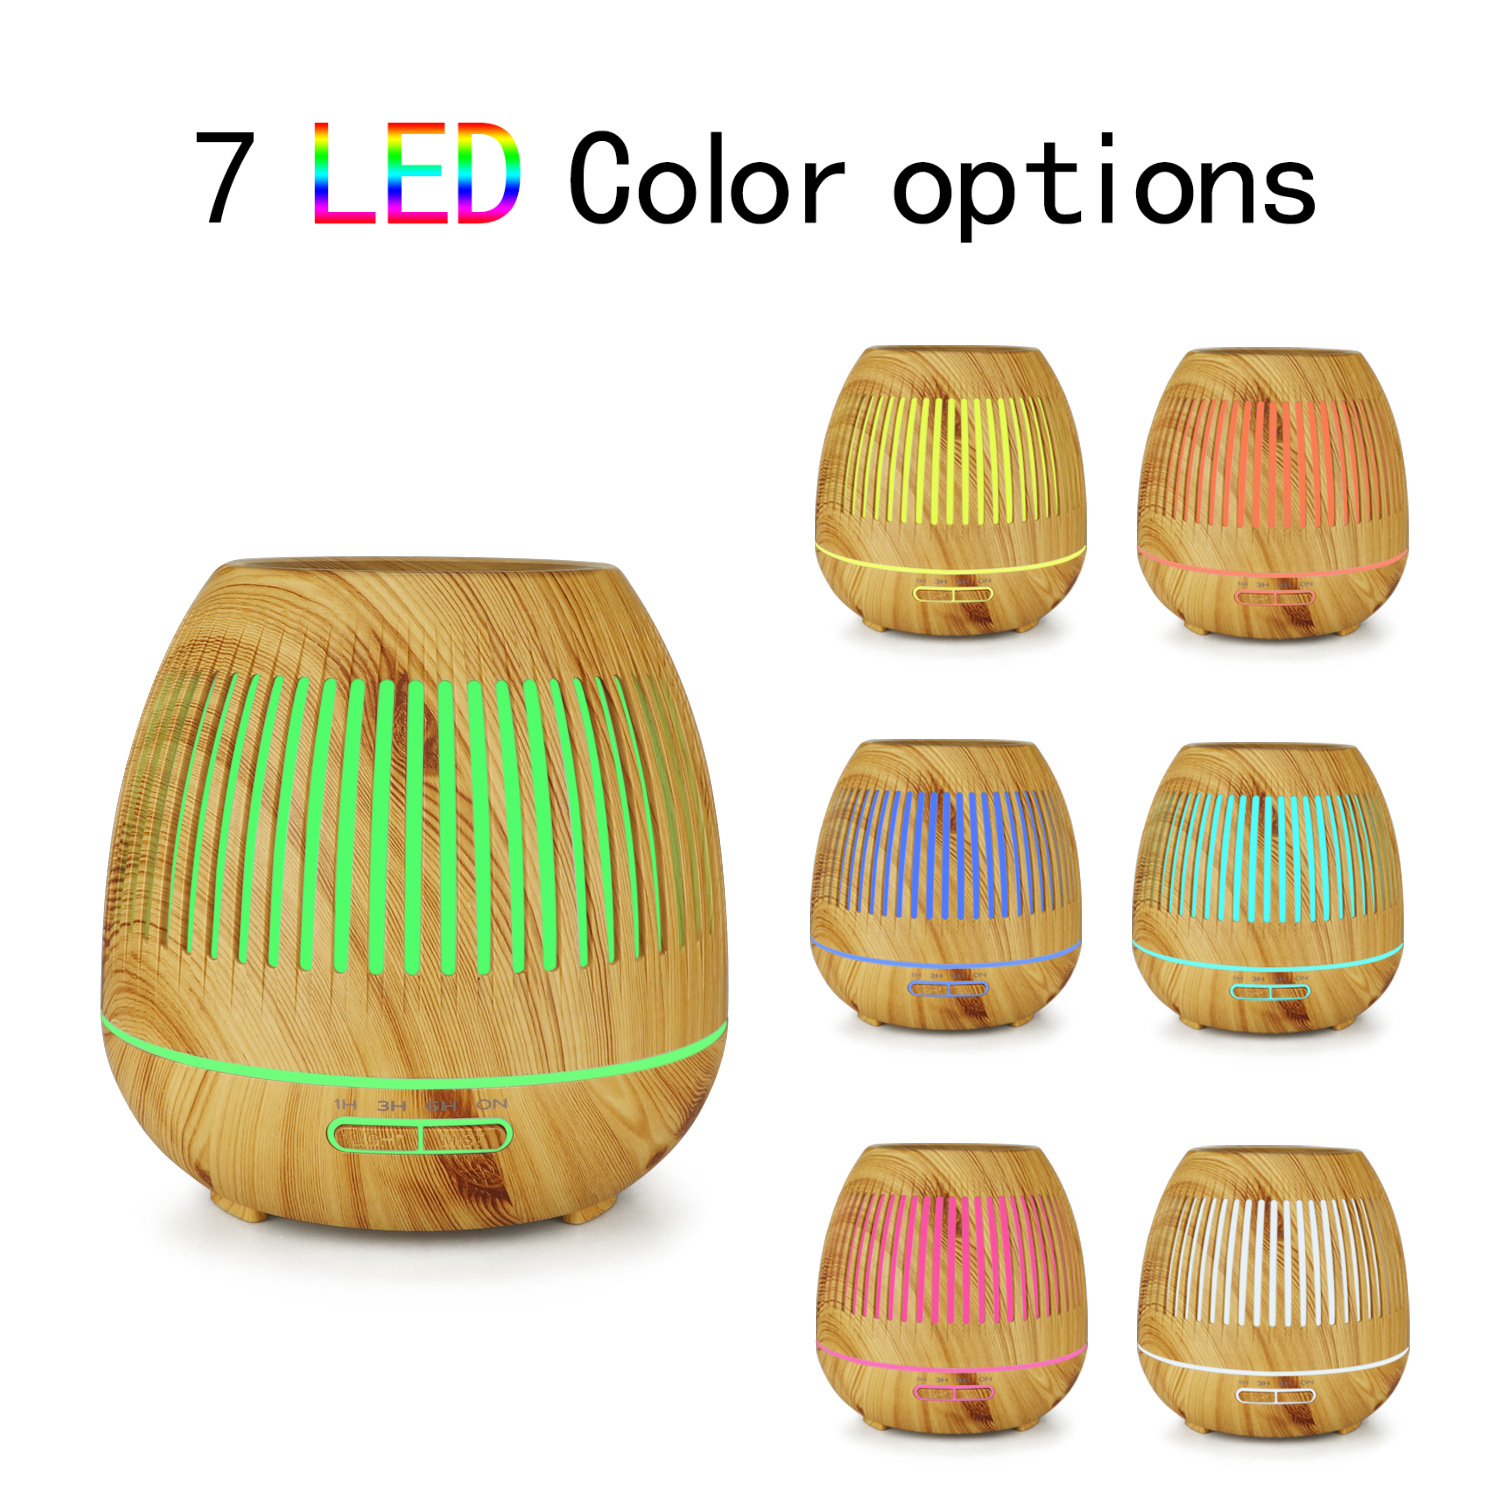 Essential Oil Diffuser Office Home Bedroom Living Room Study Yoga Spa Cool Mist Humidifier Ultrasonic Aromatherapy Diffuser